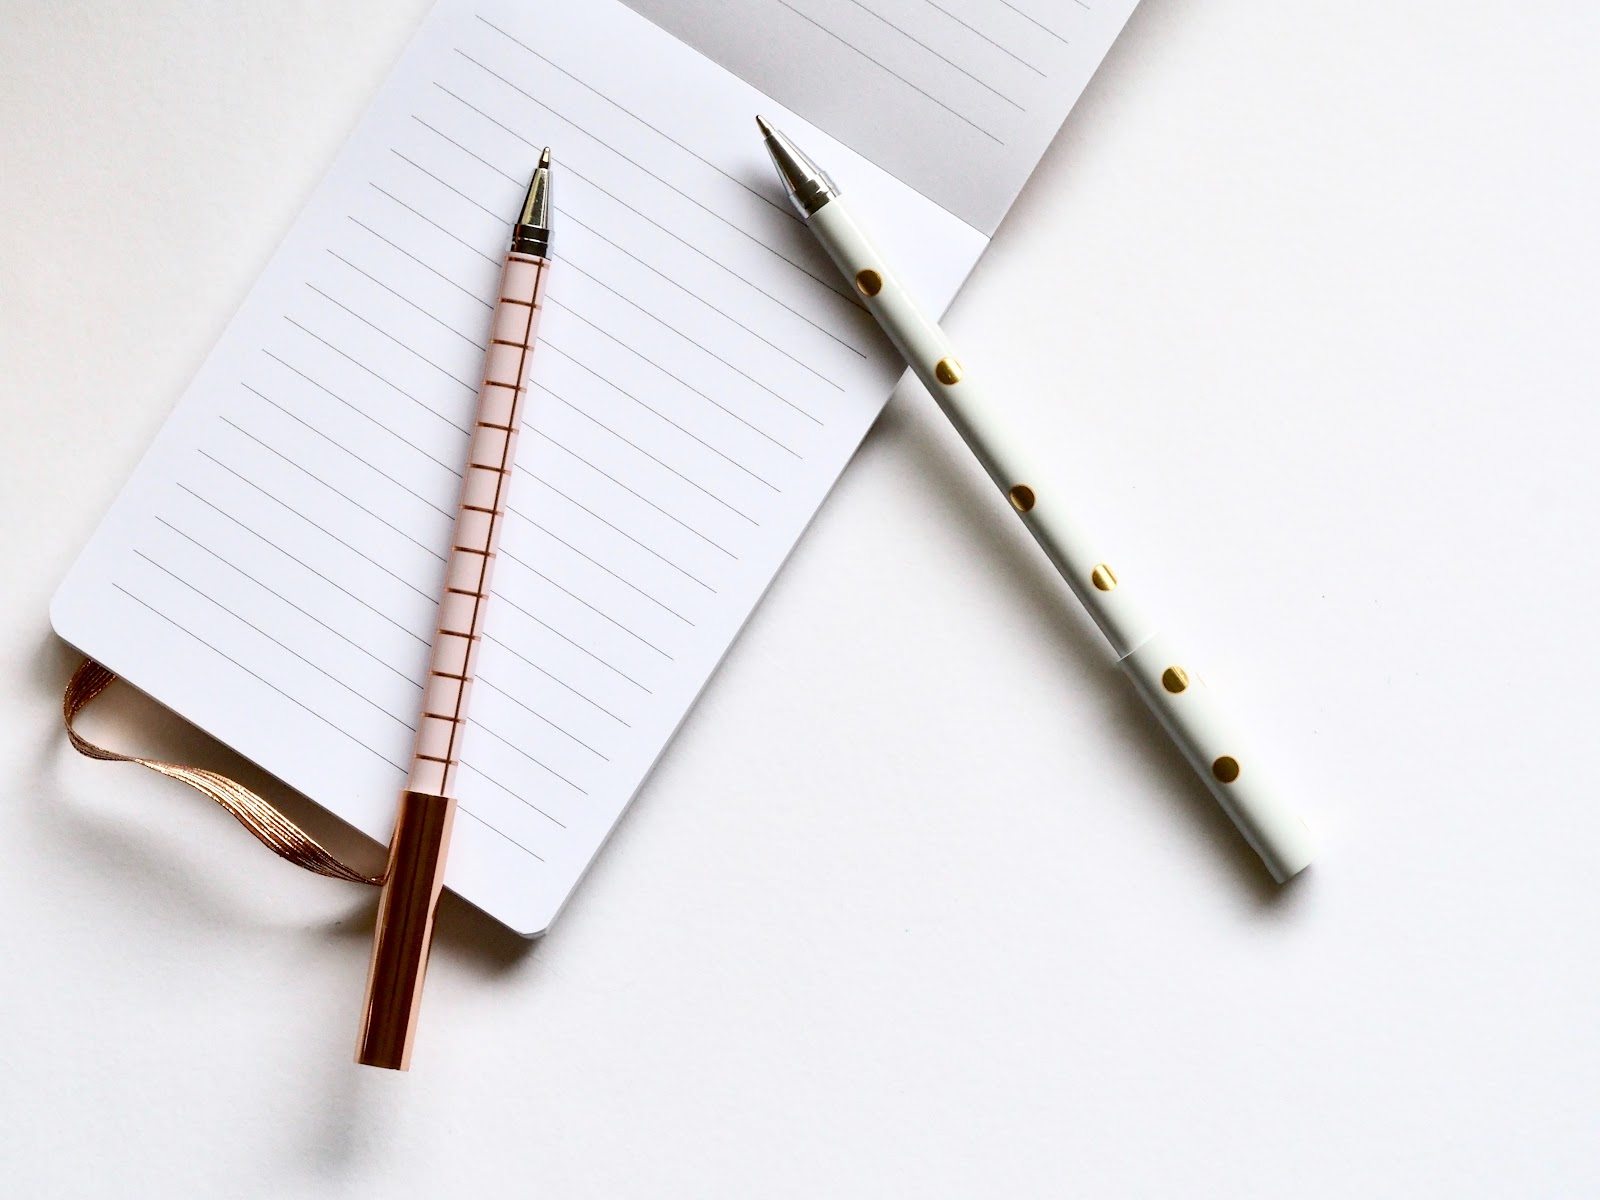 A notepad and pen is all you need to monitor your calorie intake.